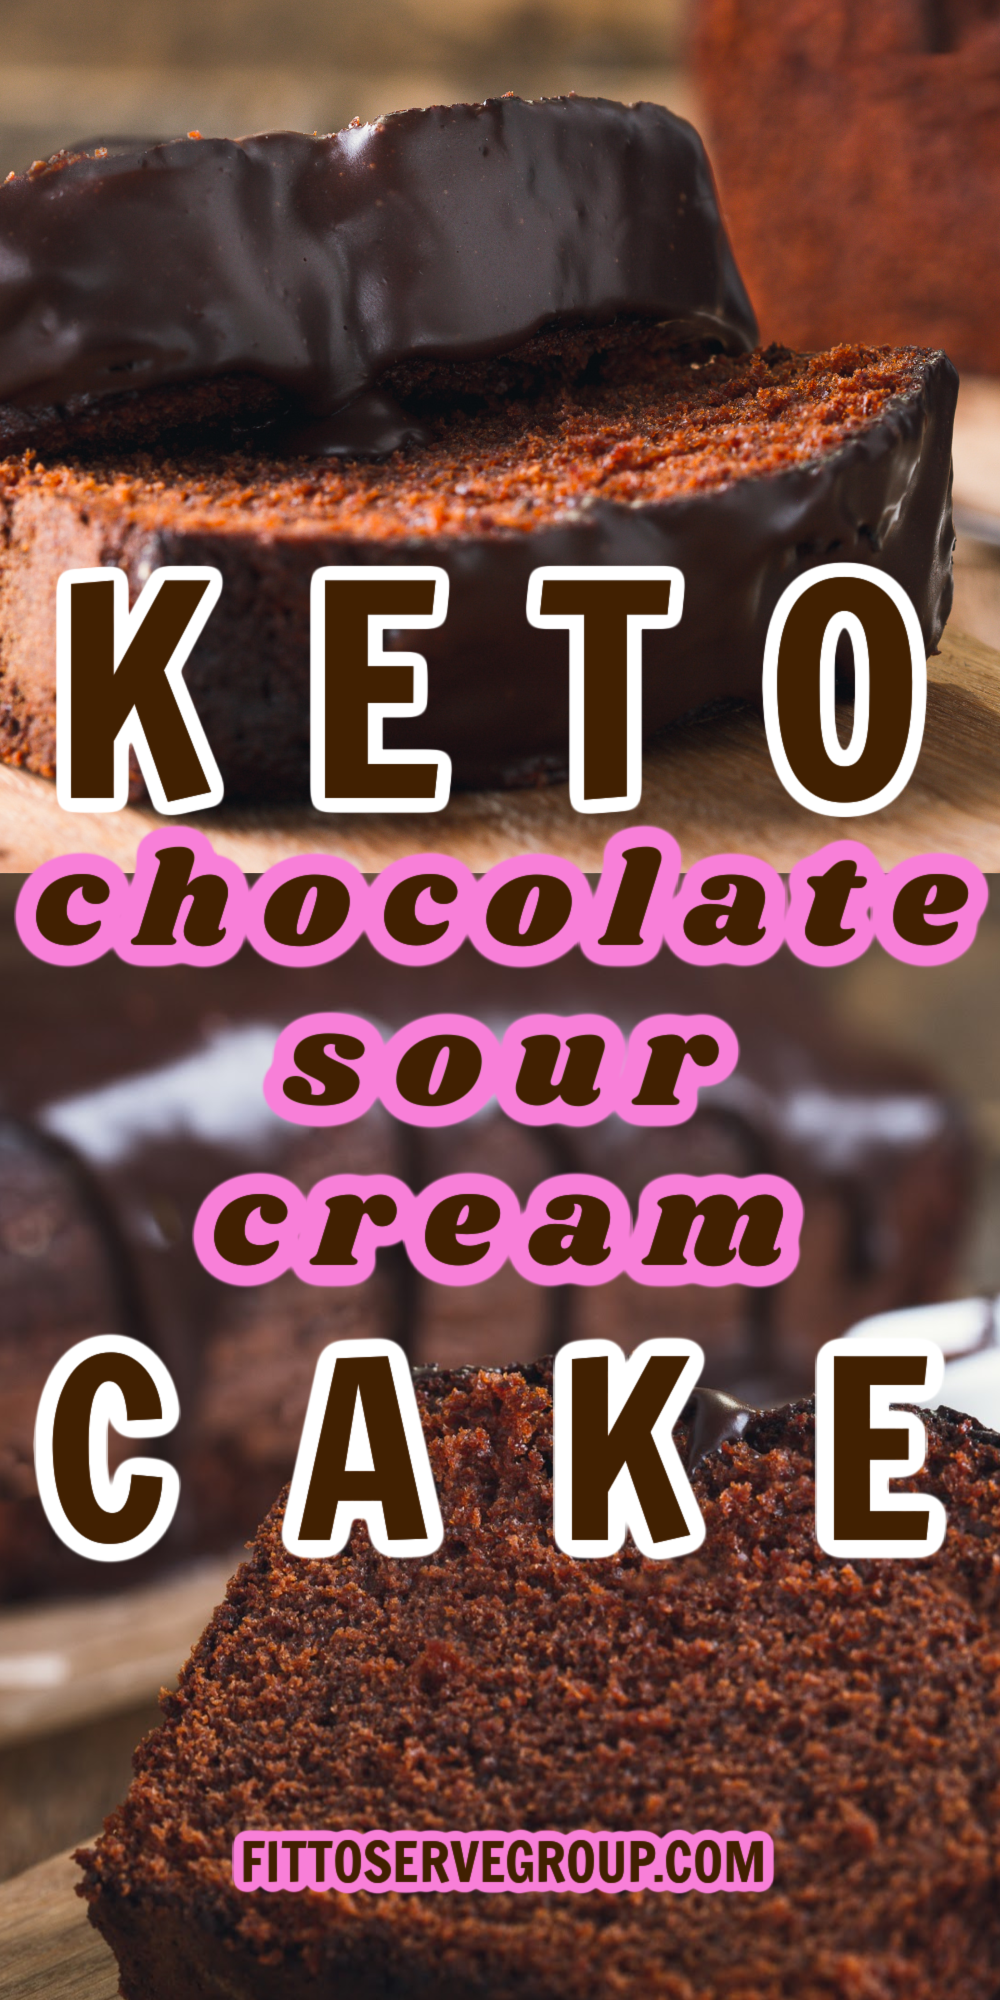 Keto Chocolate Sour Cream Cake slices on a wood board